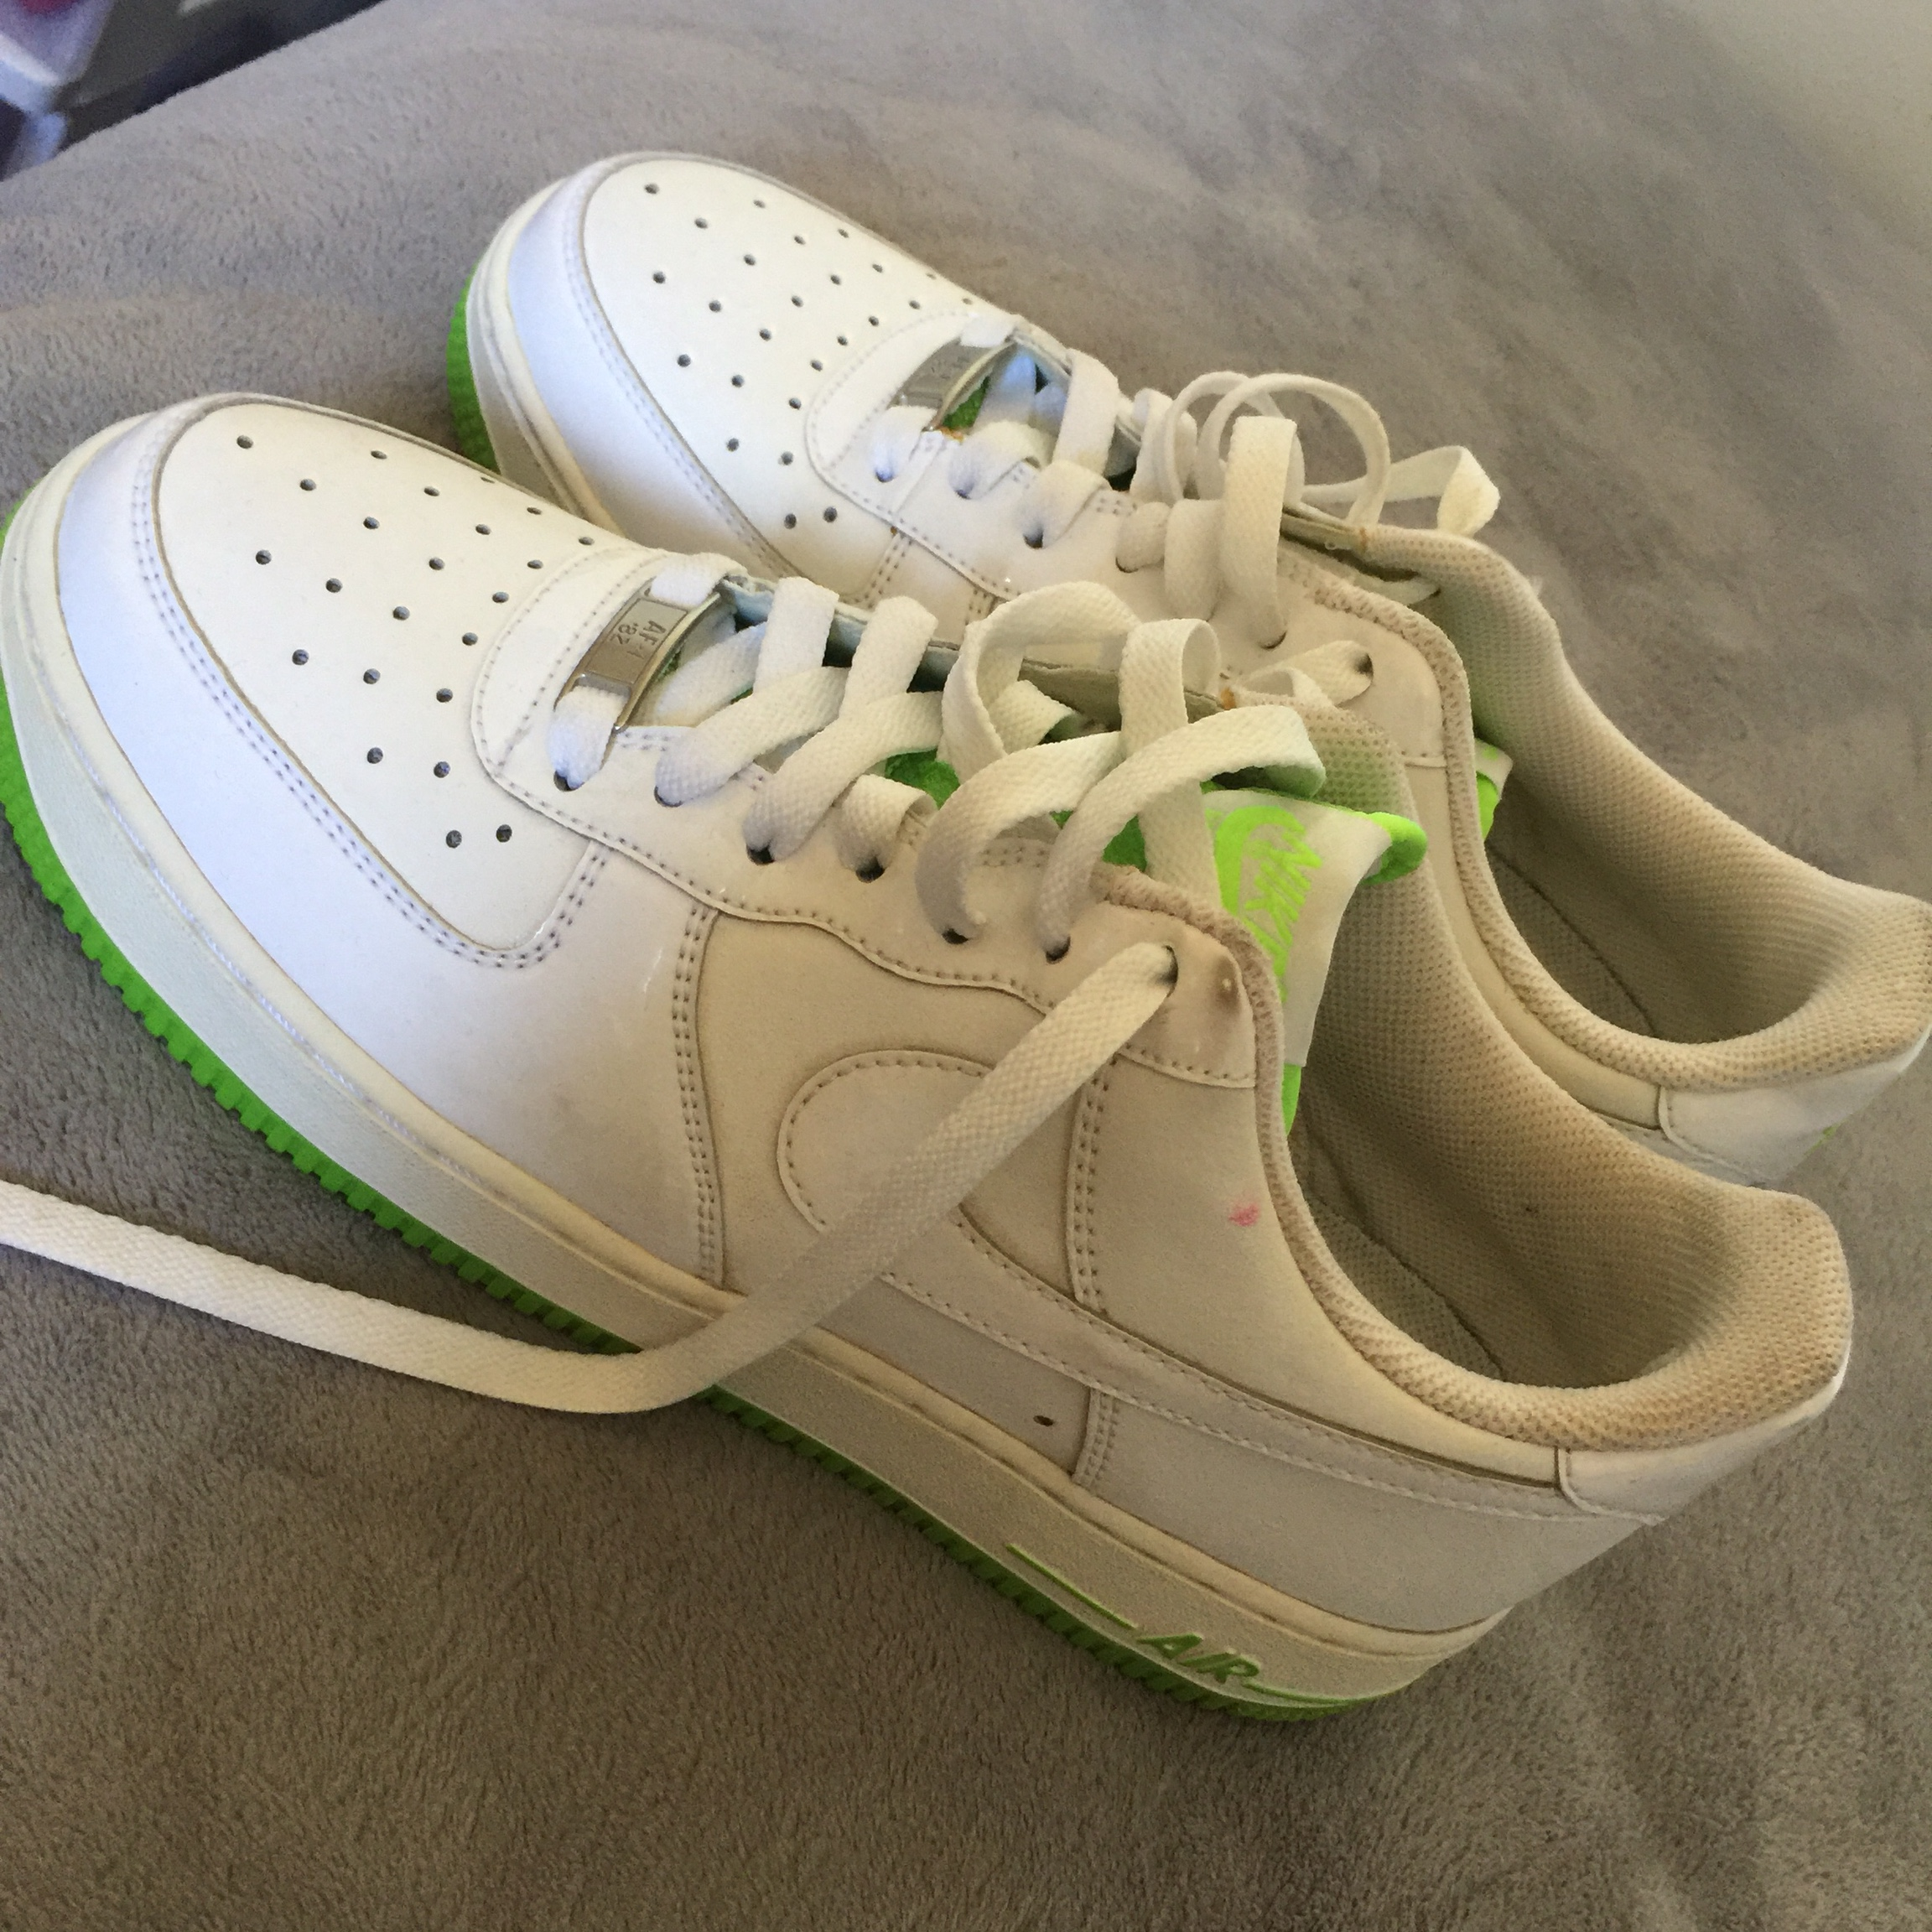 neon green forces